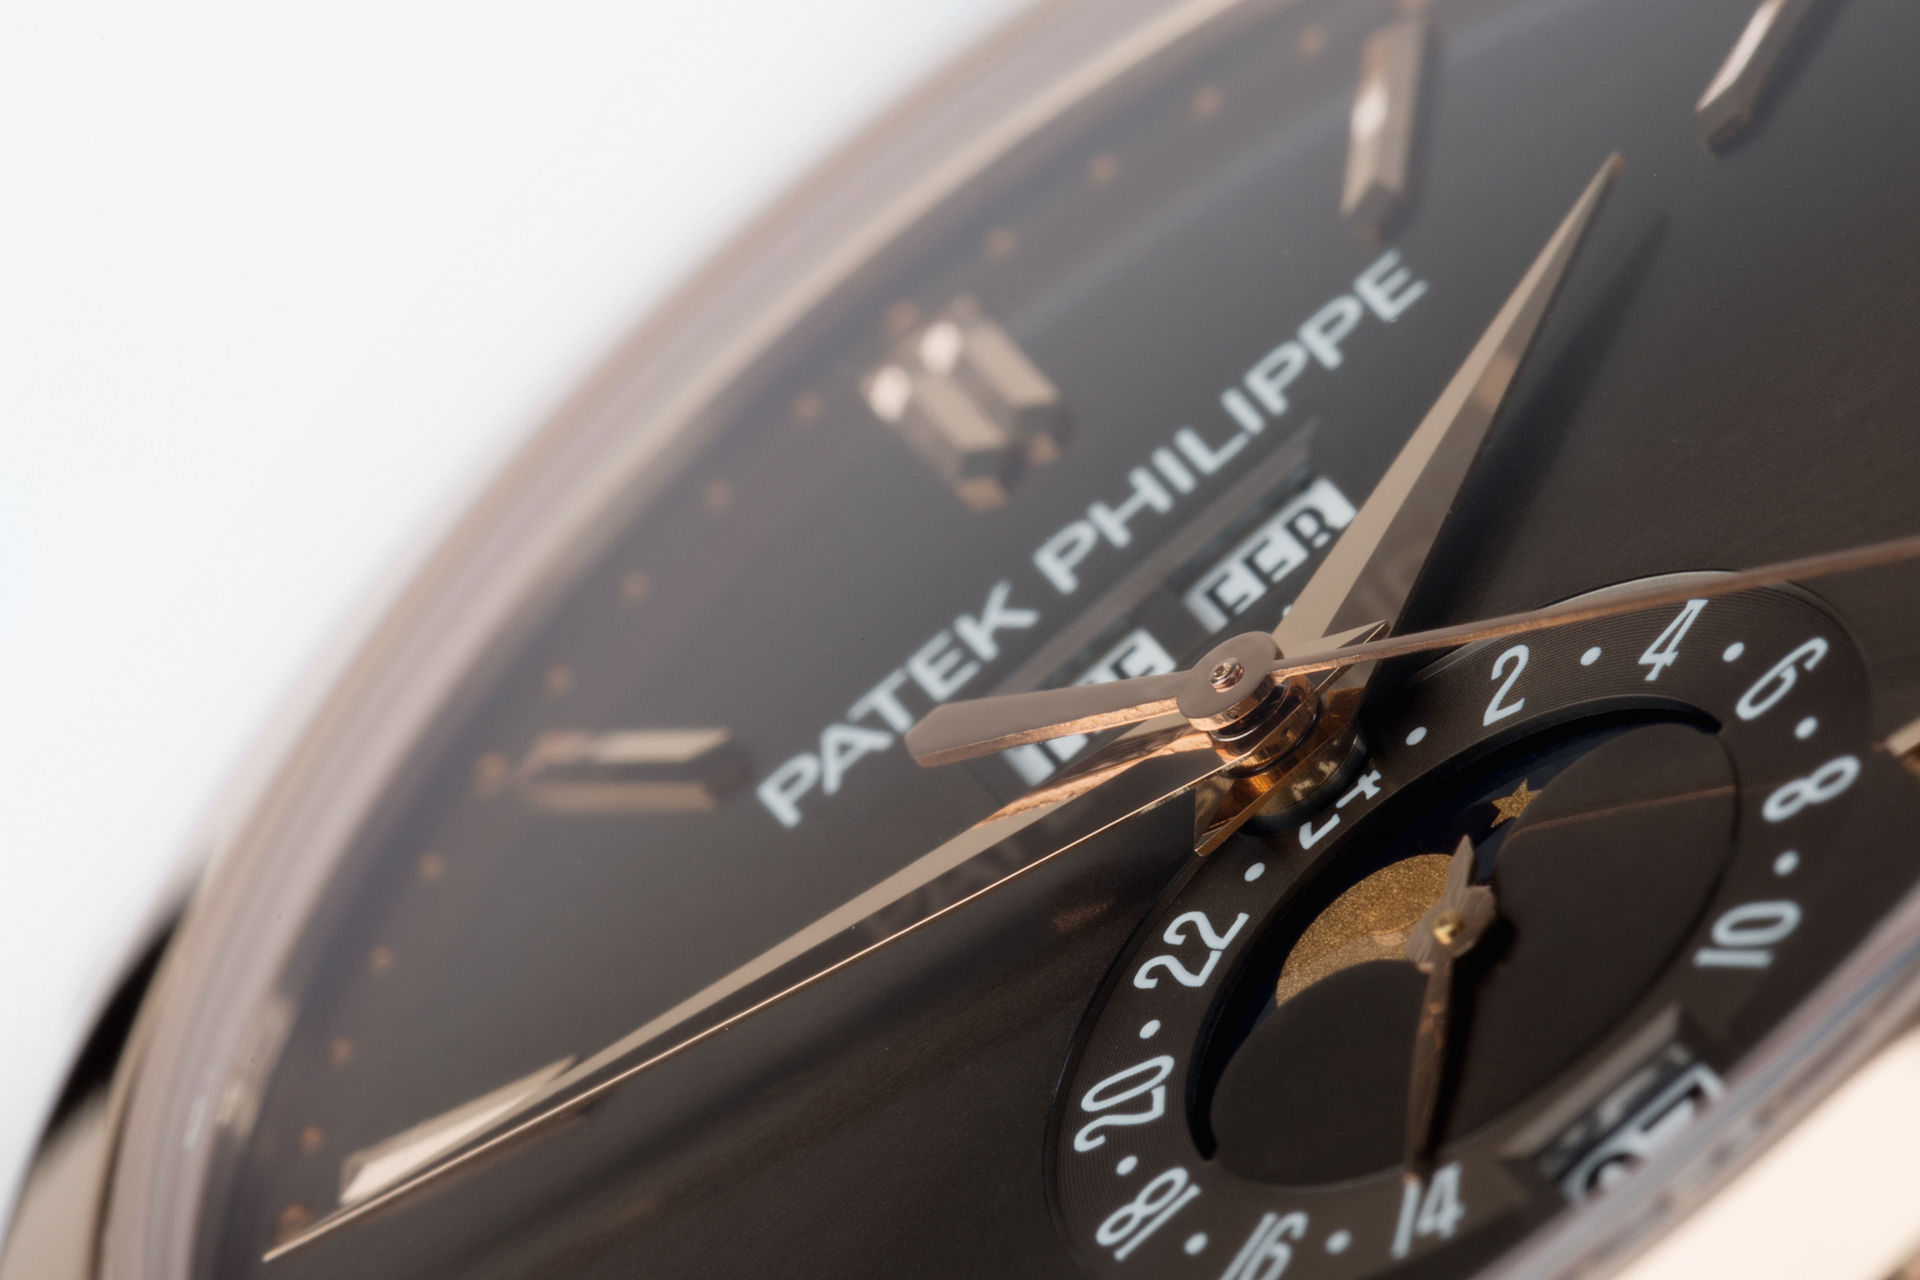 ref 5396/1R-001 | 18ct Rose Gold | Patek Philippe Annual Calendar